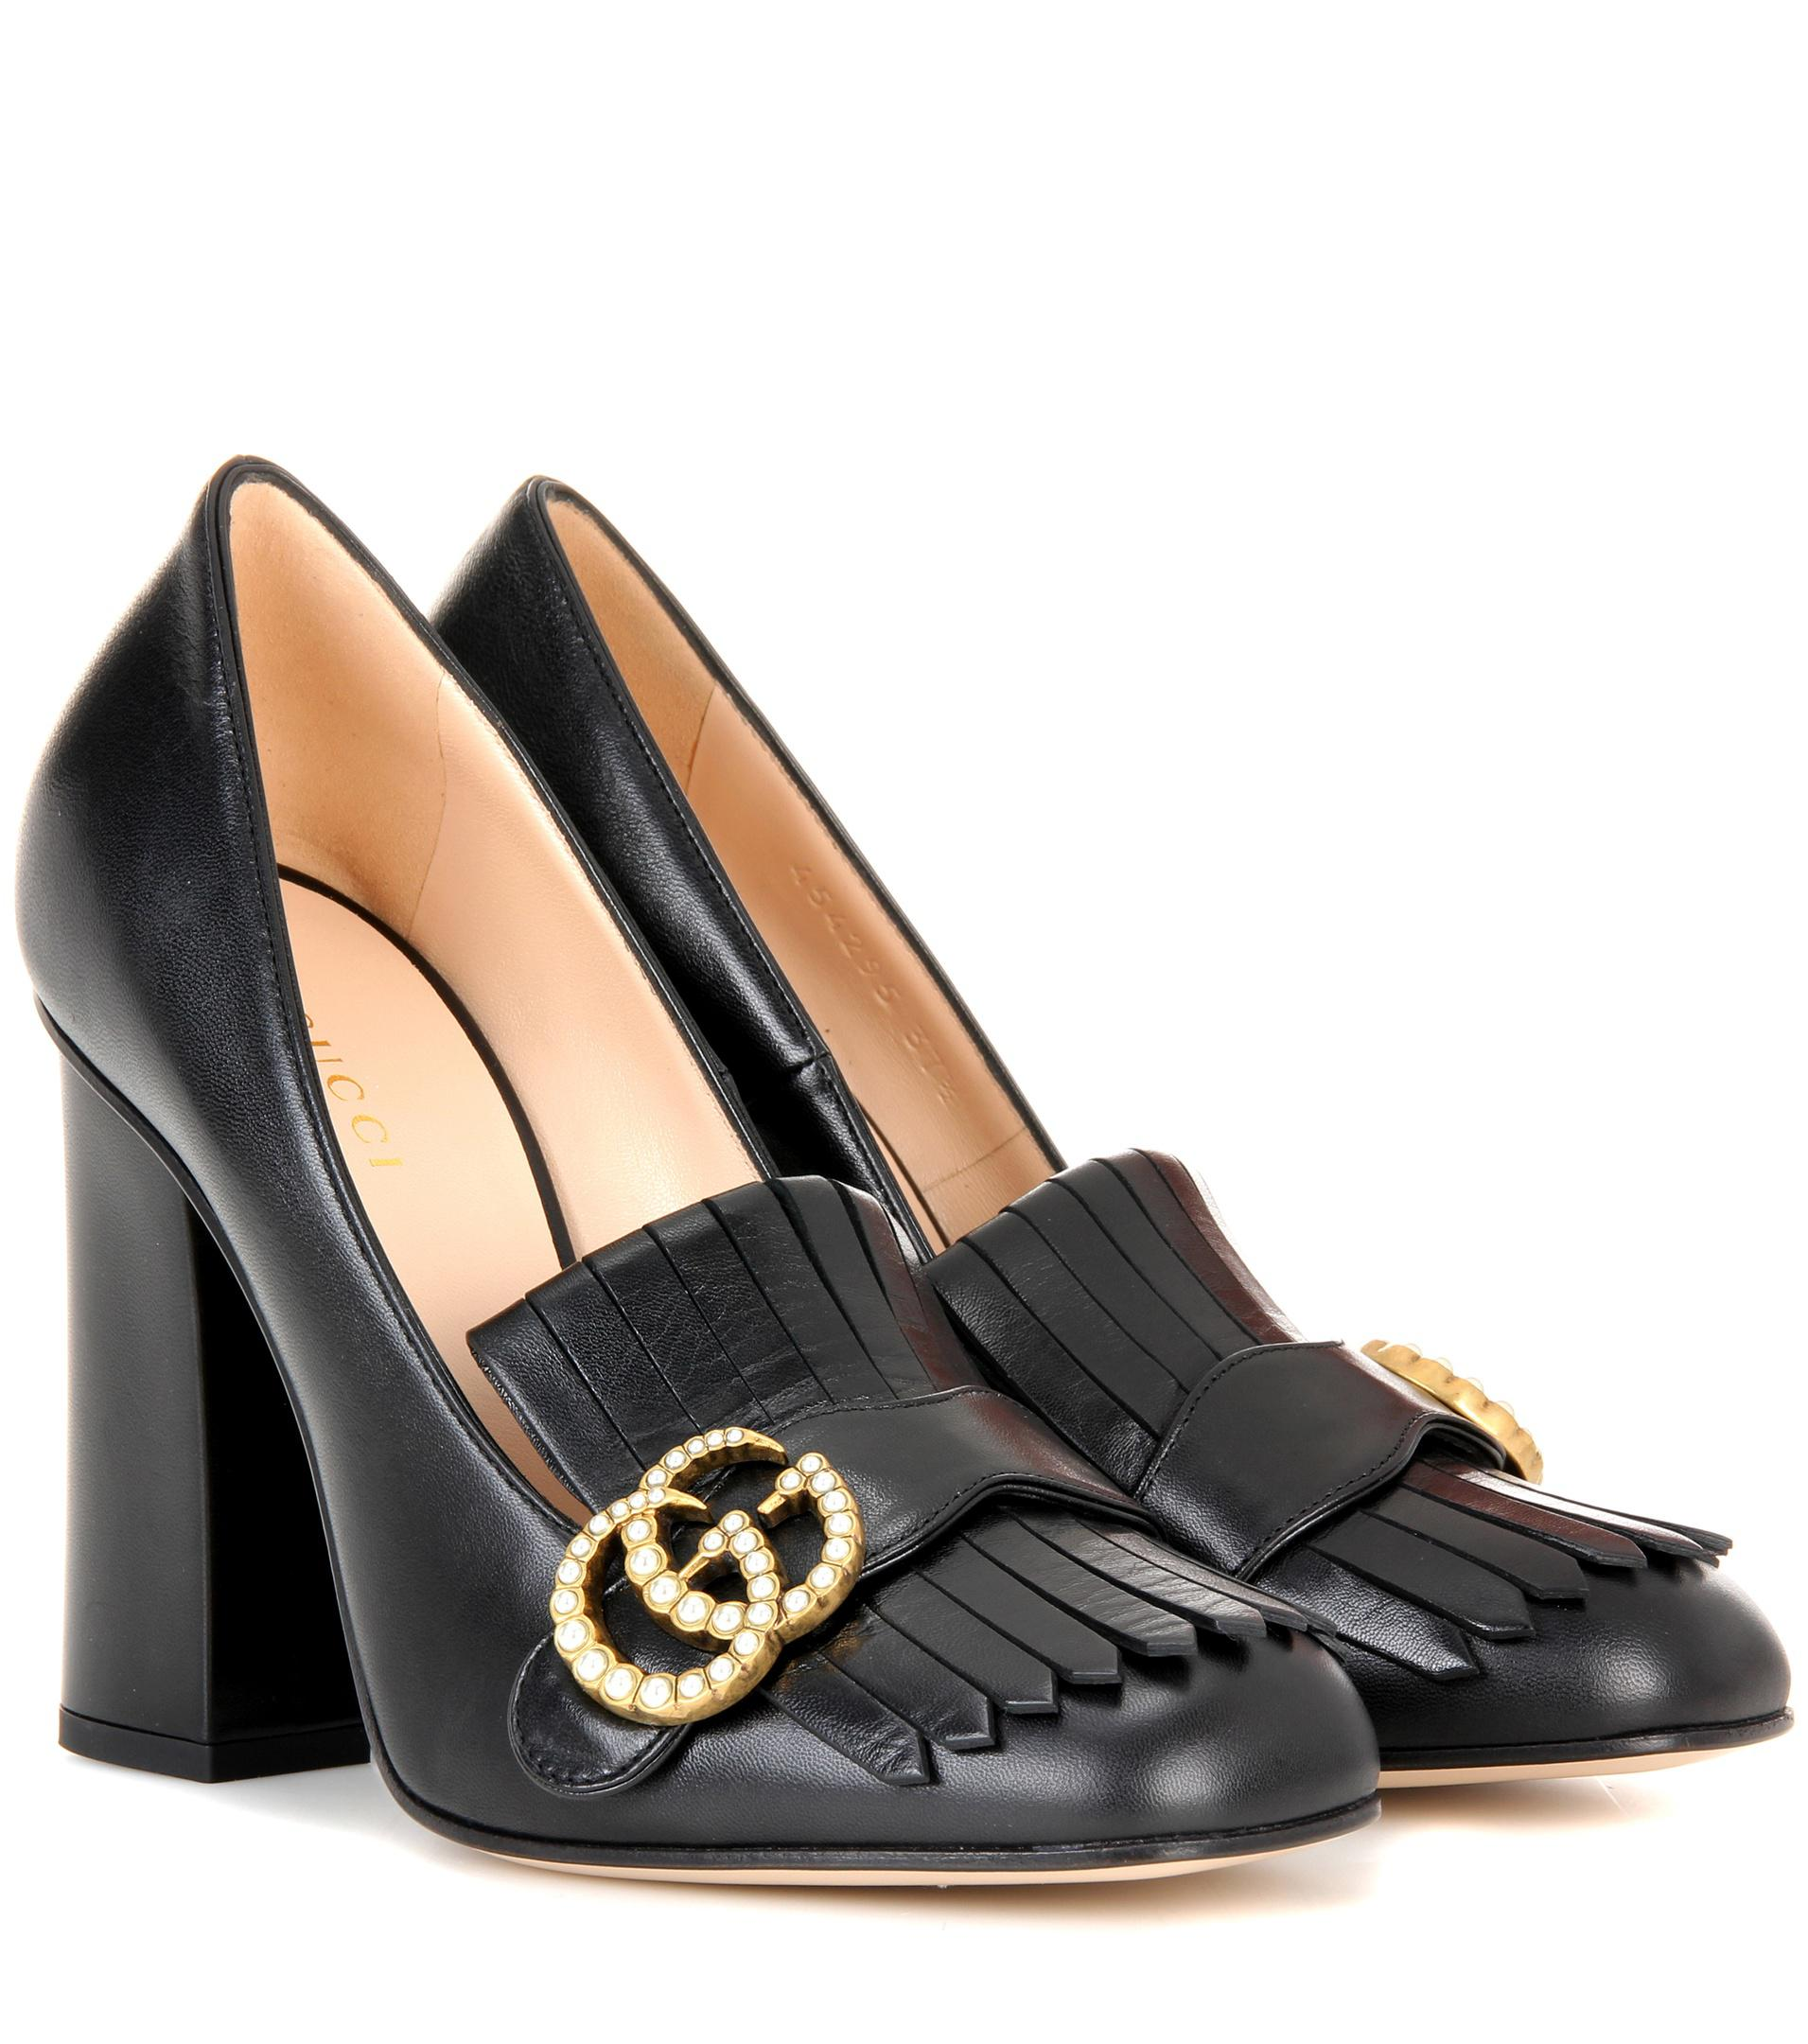 21806b56a73d2 Gucci Leather Loafer Pumps in Black - Lyst